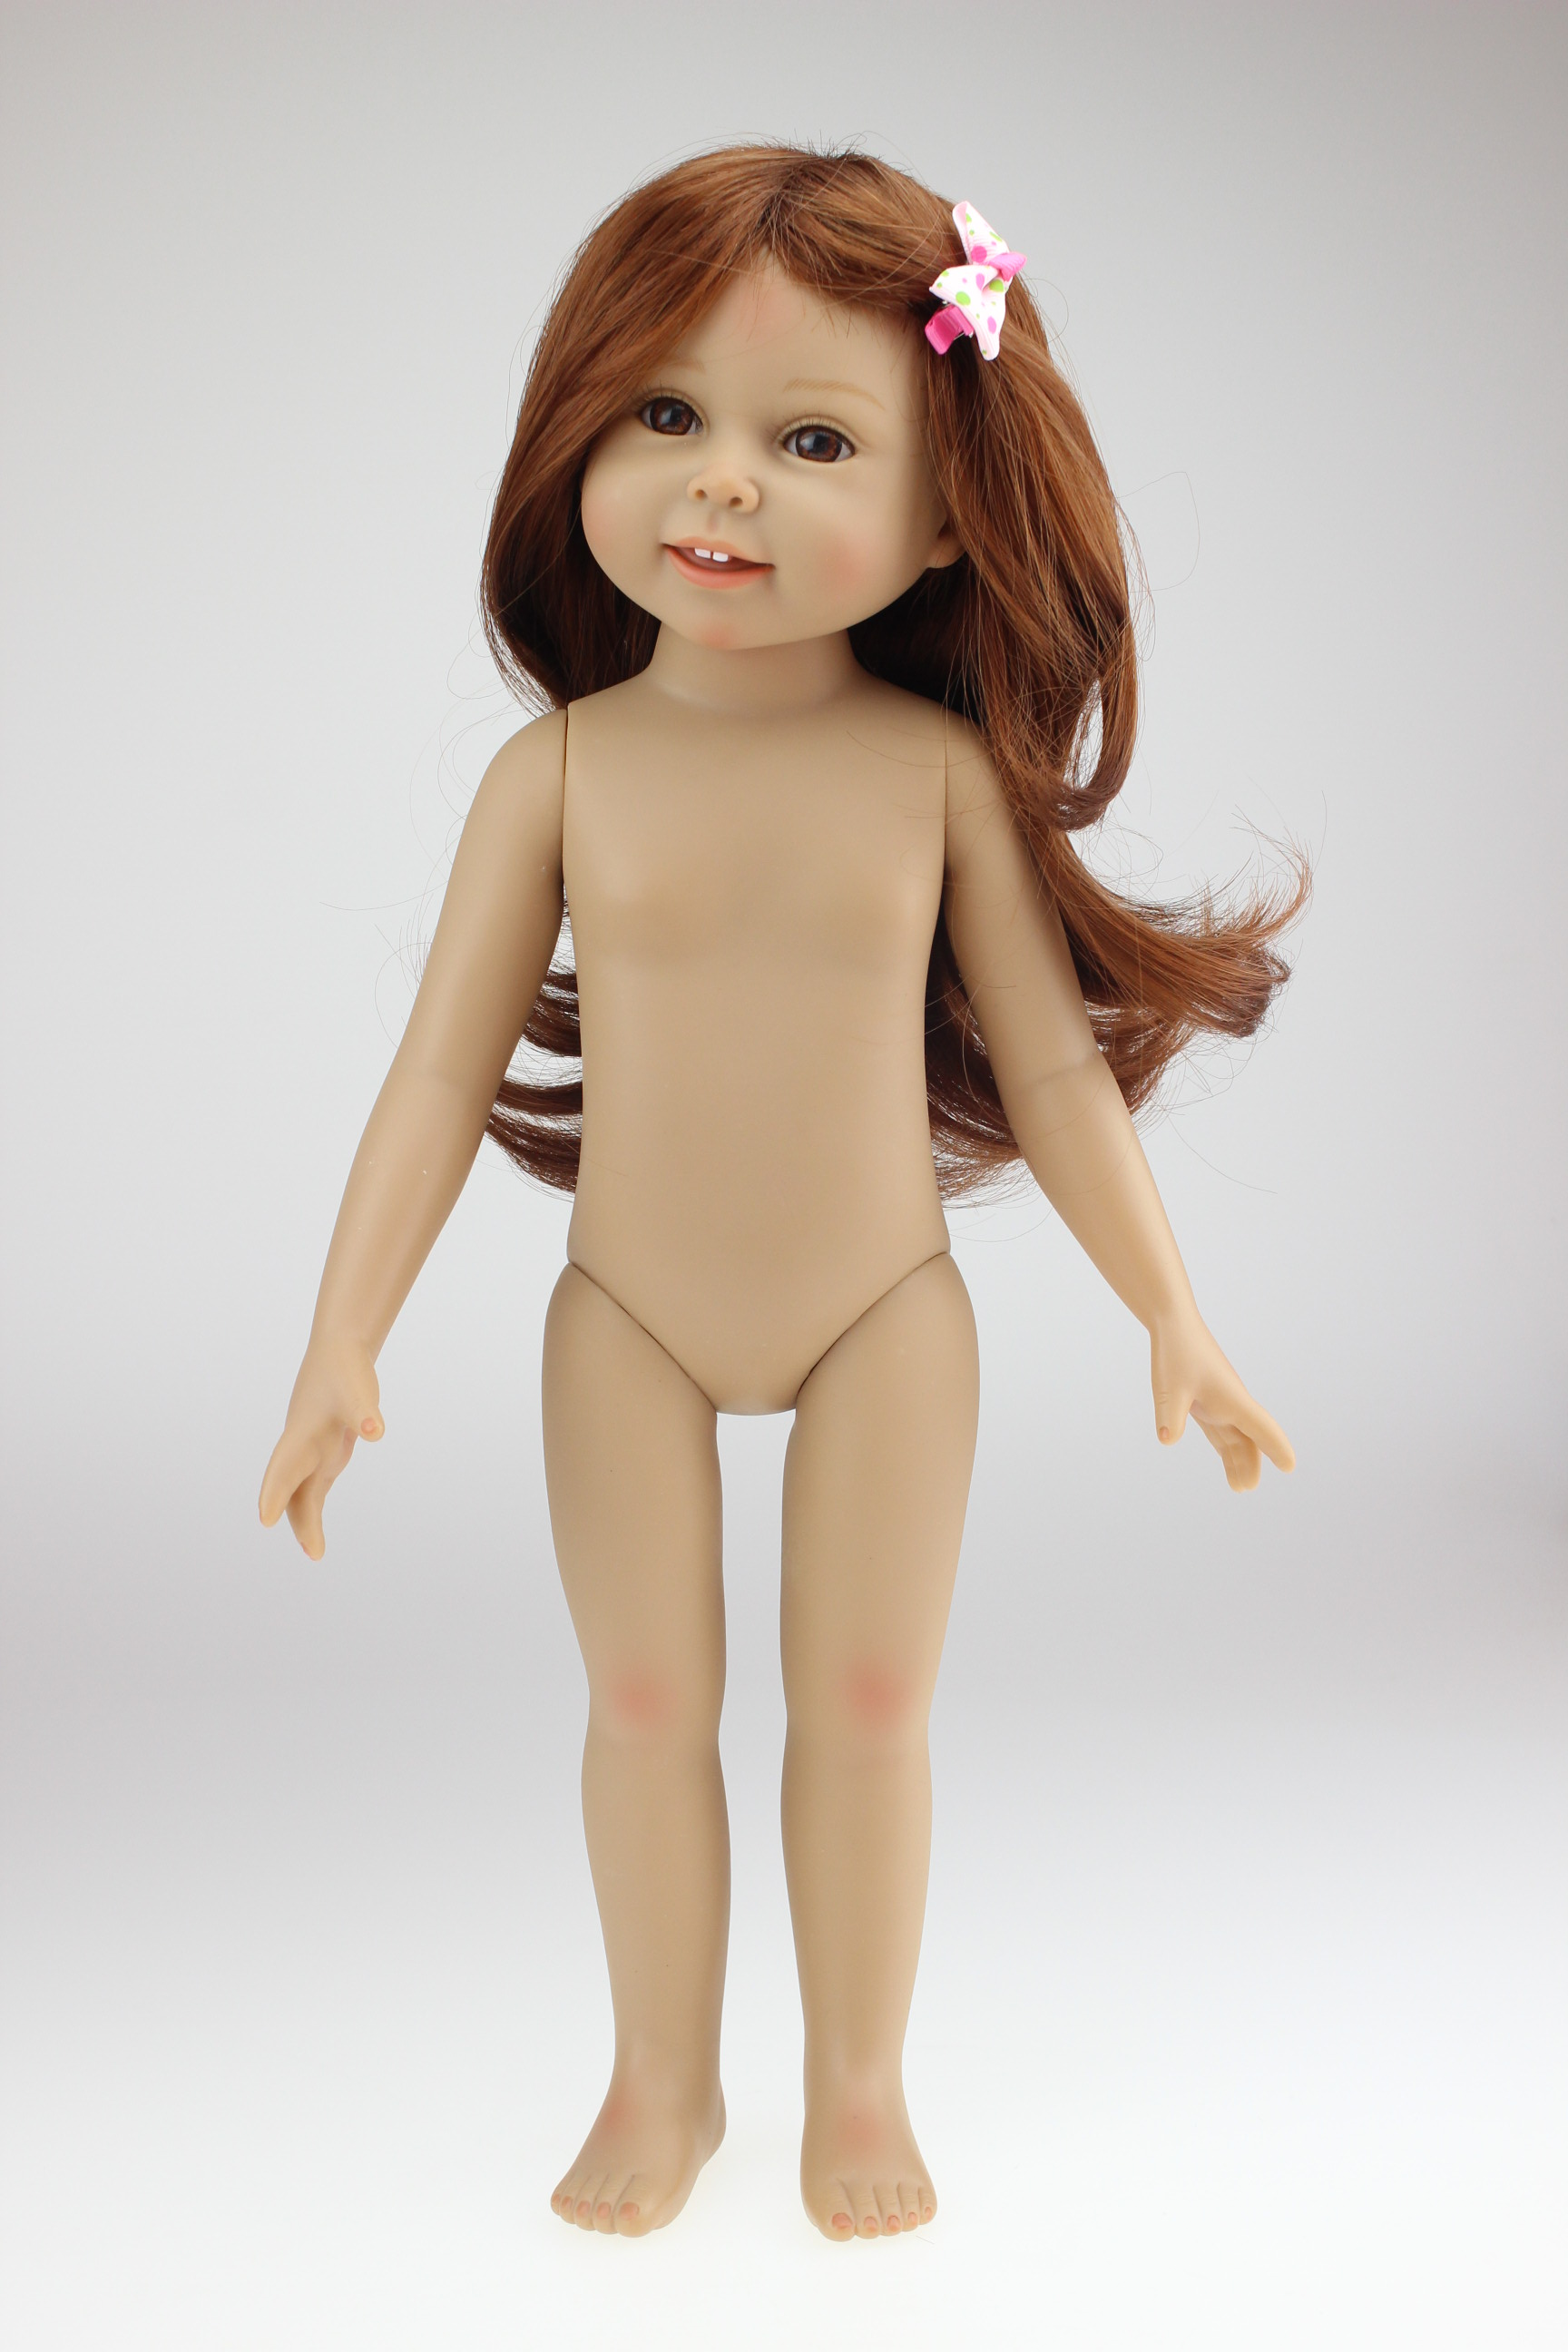 Naked Doll 3